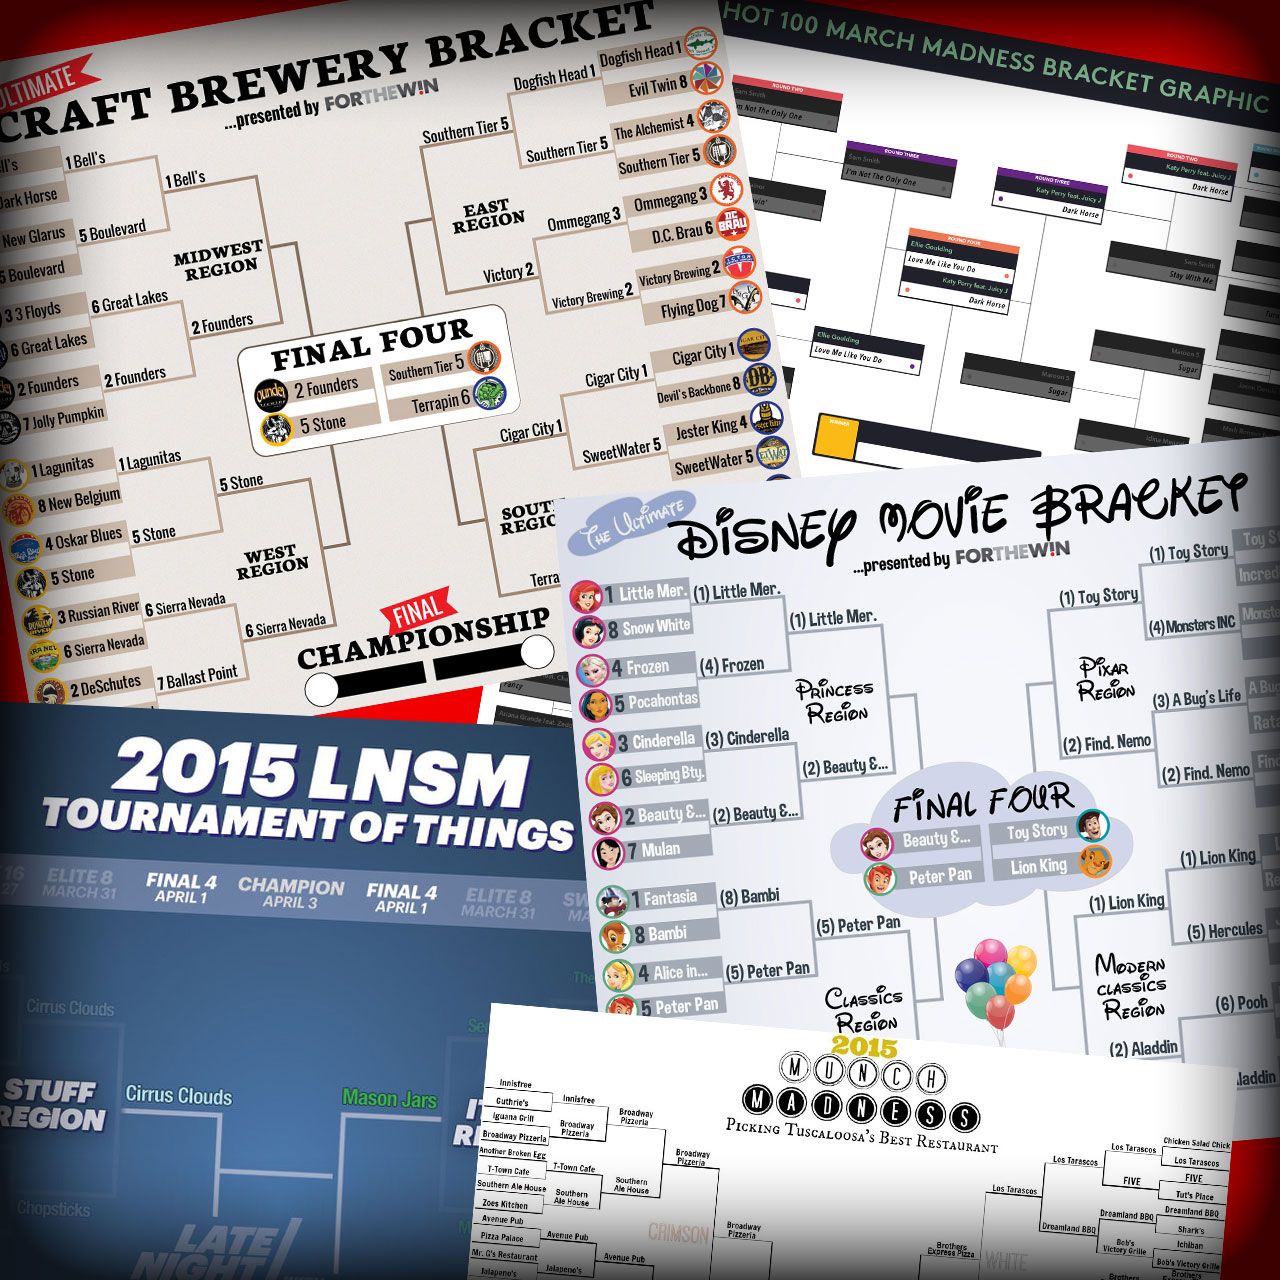 Final Four brackets including craft breweries, Hot 100, Munch Madness and Disney movies